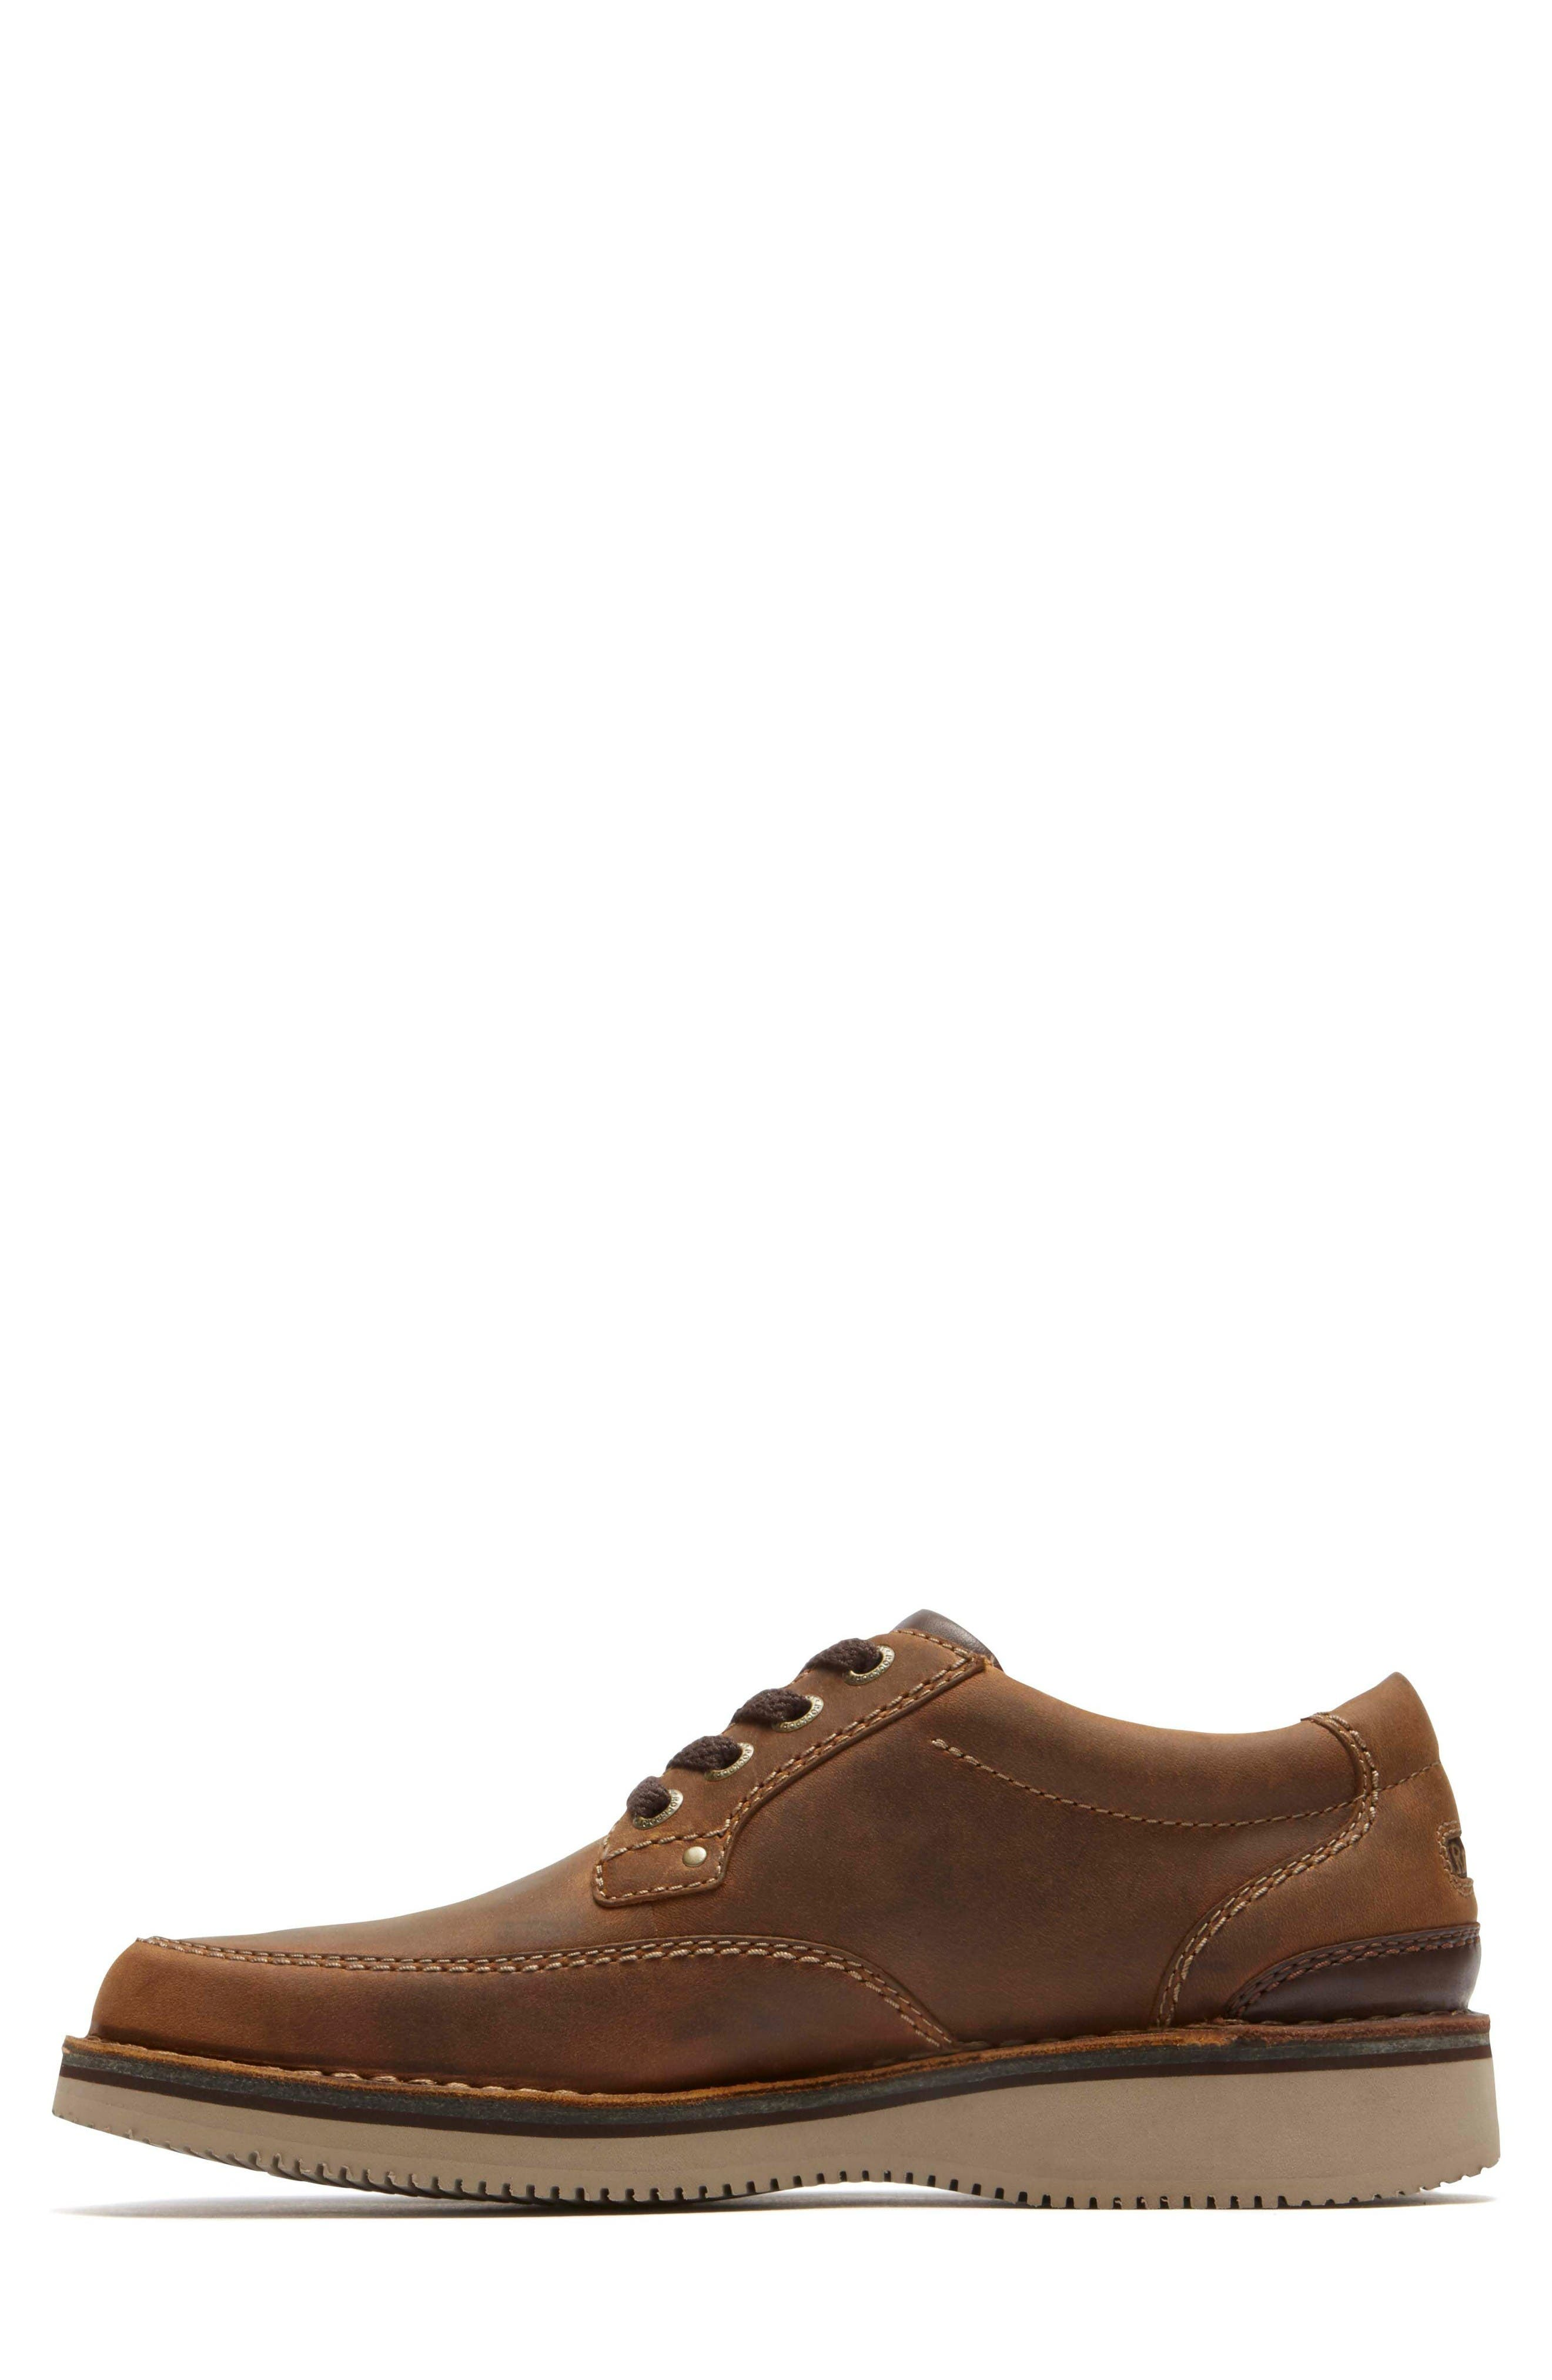 Prestige Point Mudguard Oxford,                             Alternate thumbnail 3, color,                             Beeswax Leather